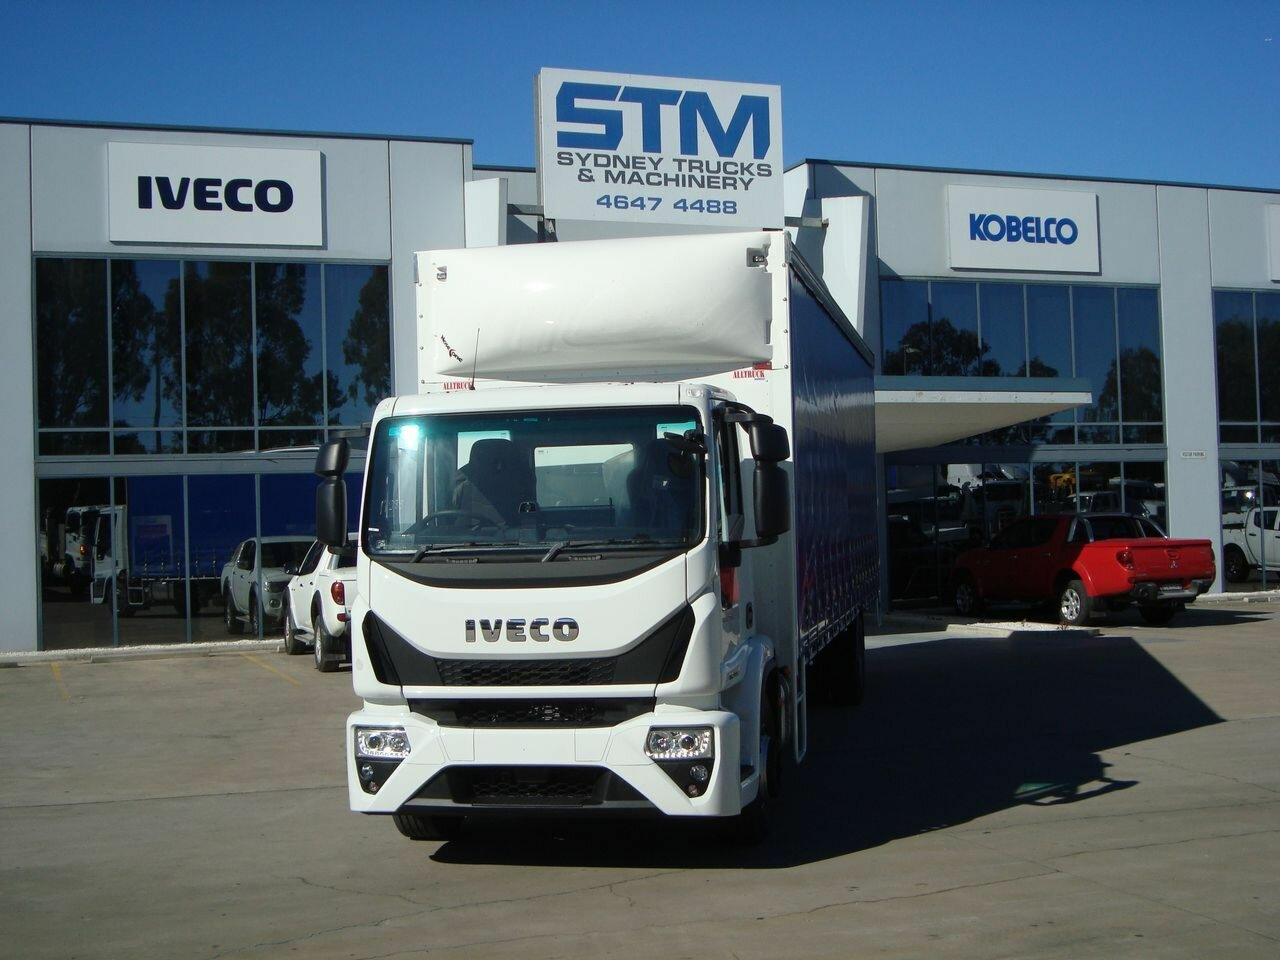 2017 IVECO EUROCARGO EUROCARGOE6 CAB CHASSIS